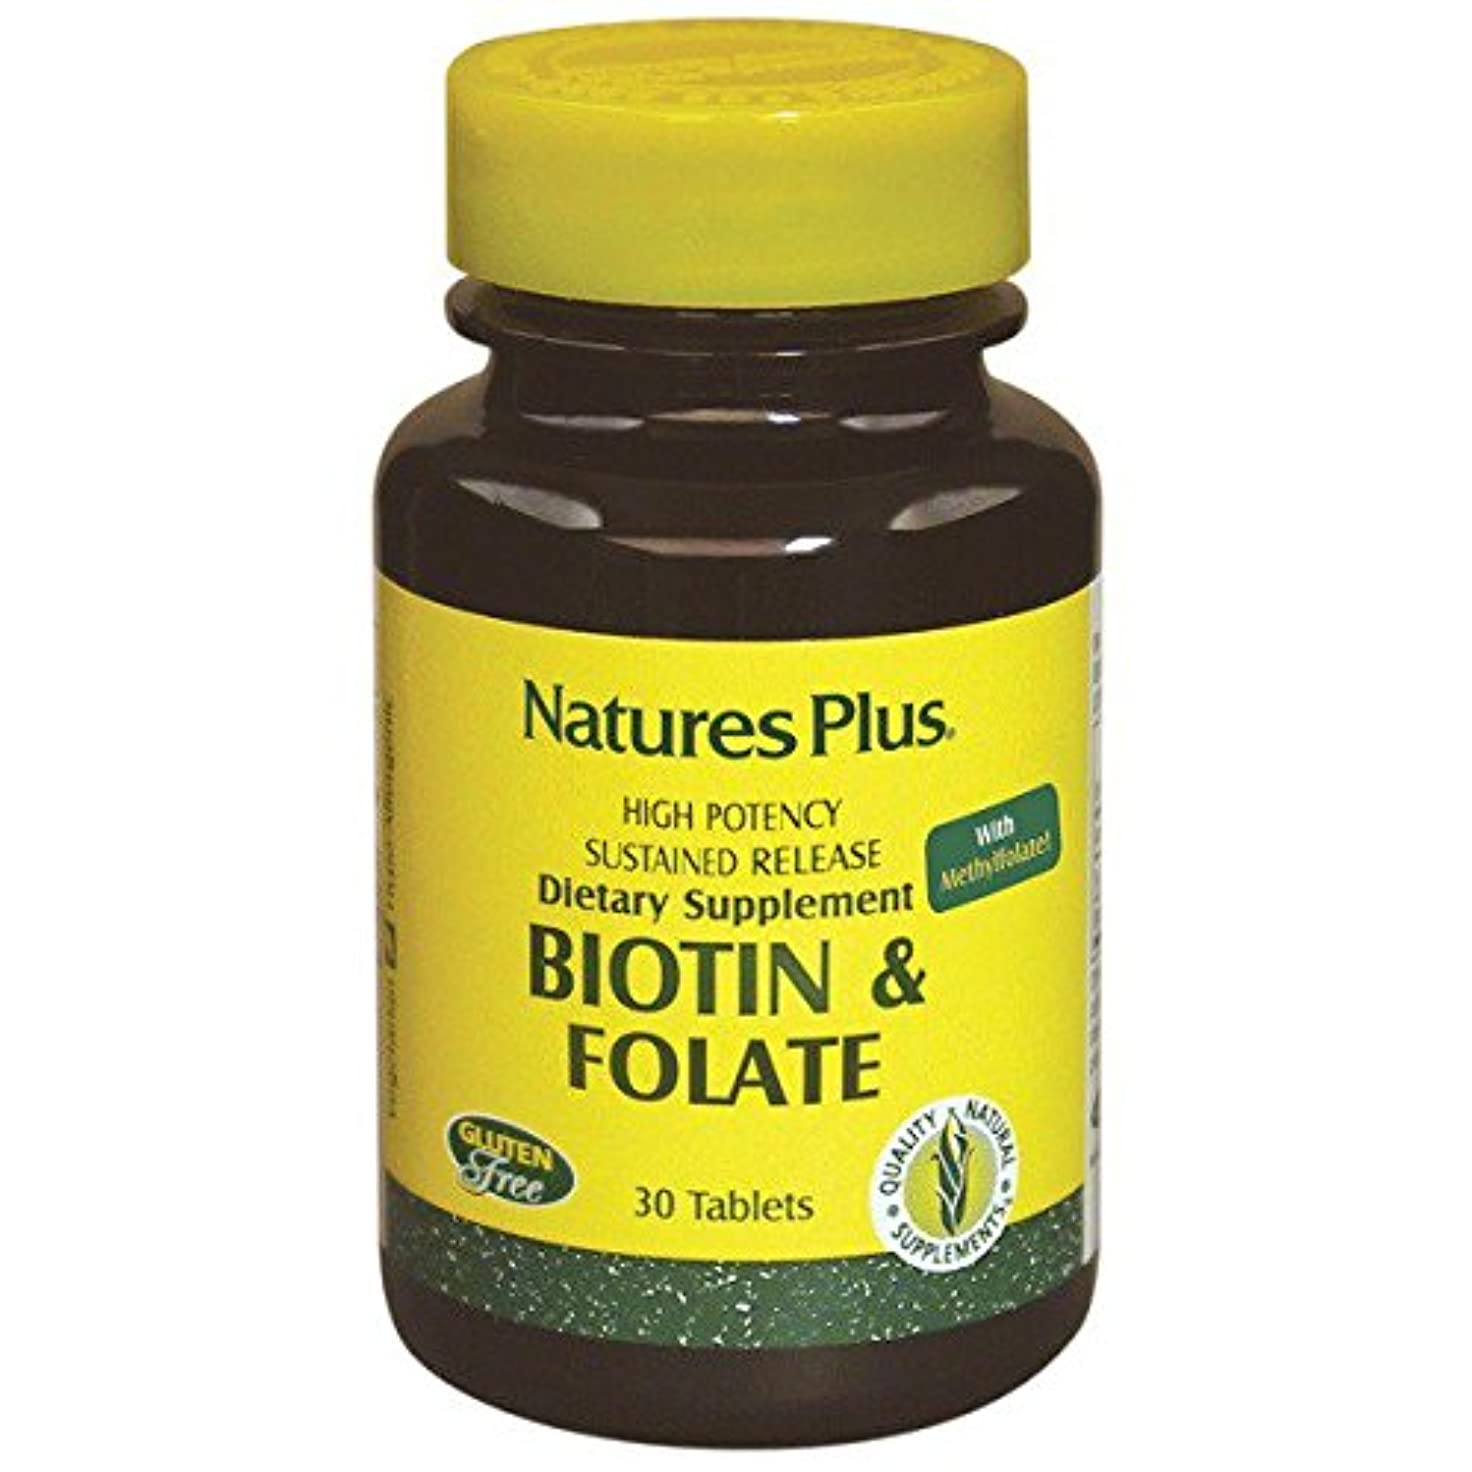 Biotin/Folic Acid Time Release Nature's Plus 30 Sustained Release Tablet by Nature's Plus